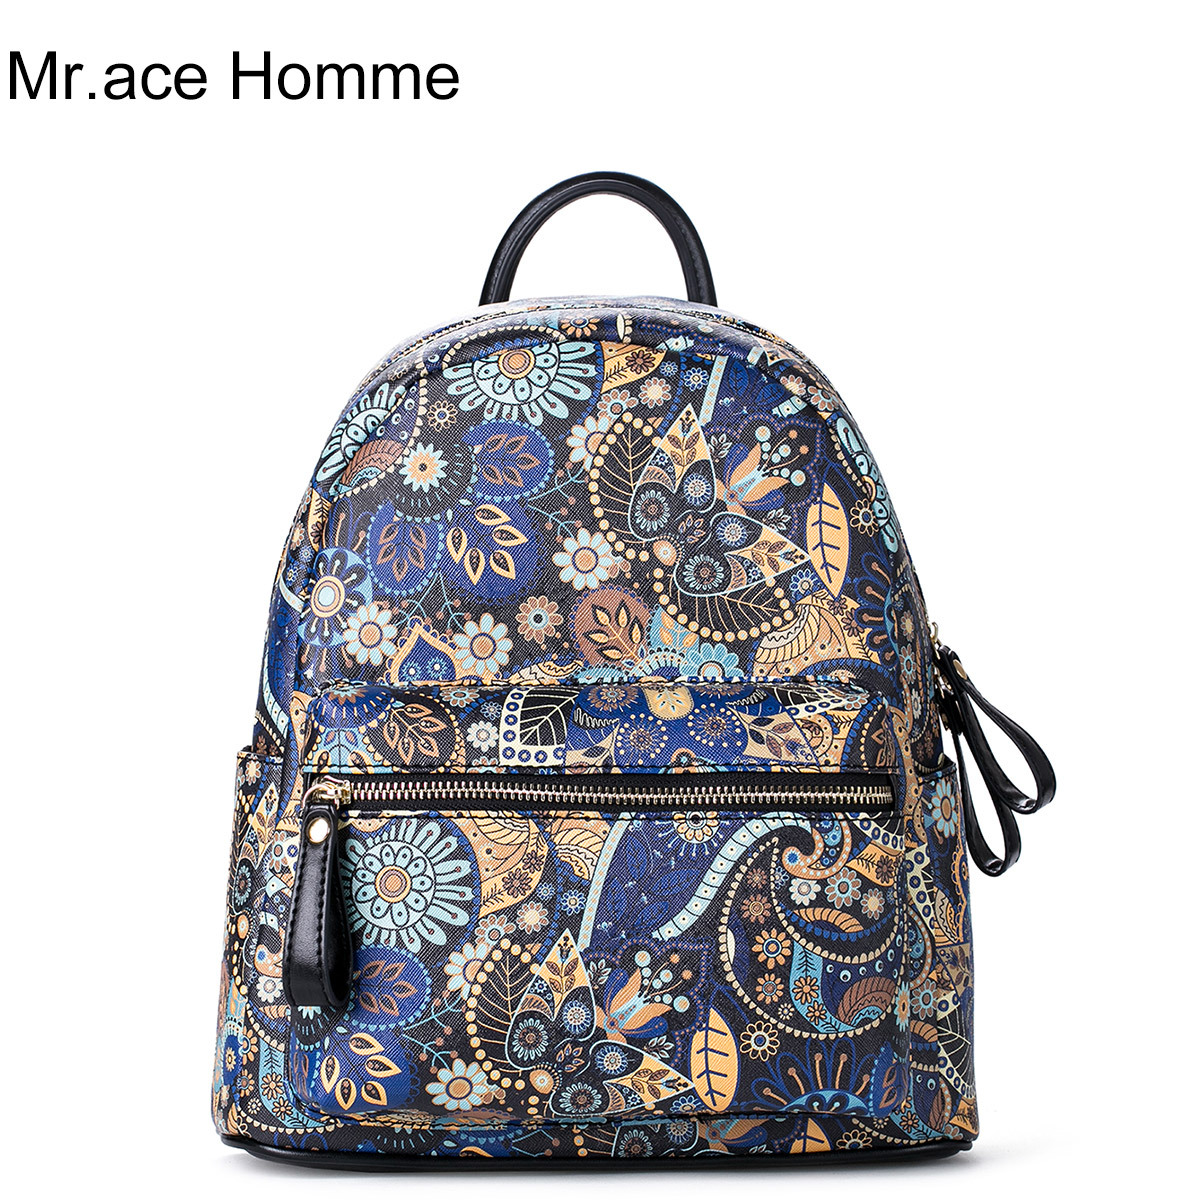 Mr ace Homme Fashion Women PU Leather Backpacks Teenage Girl Schoolbag Small Flower Printing Satchel High